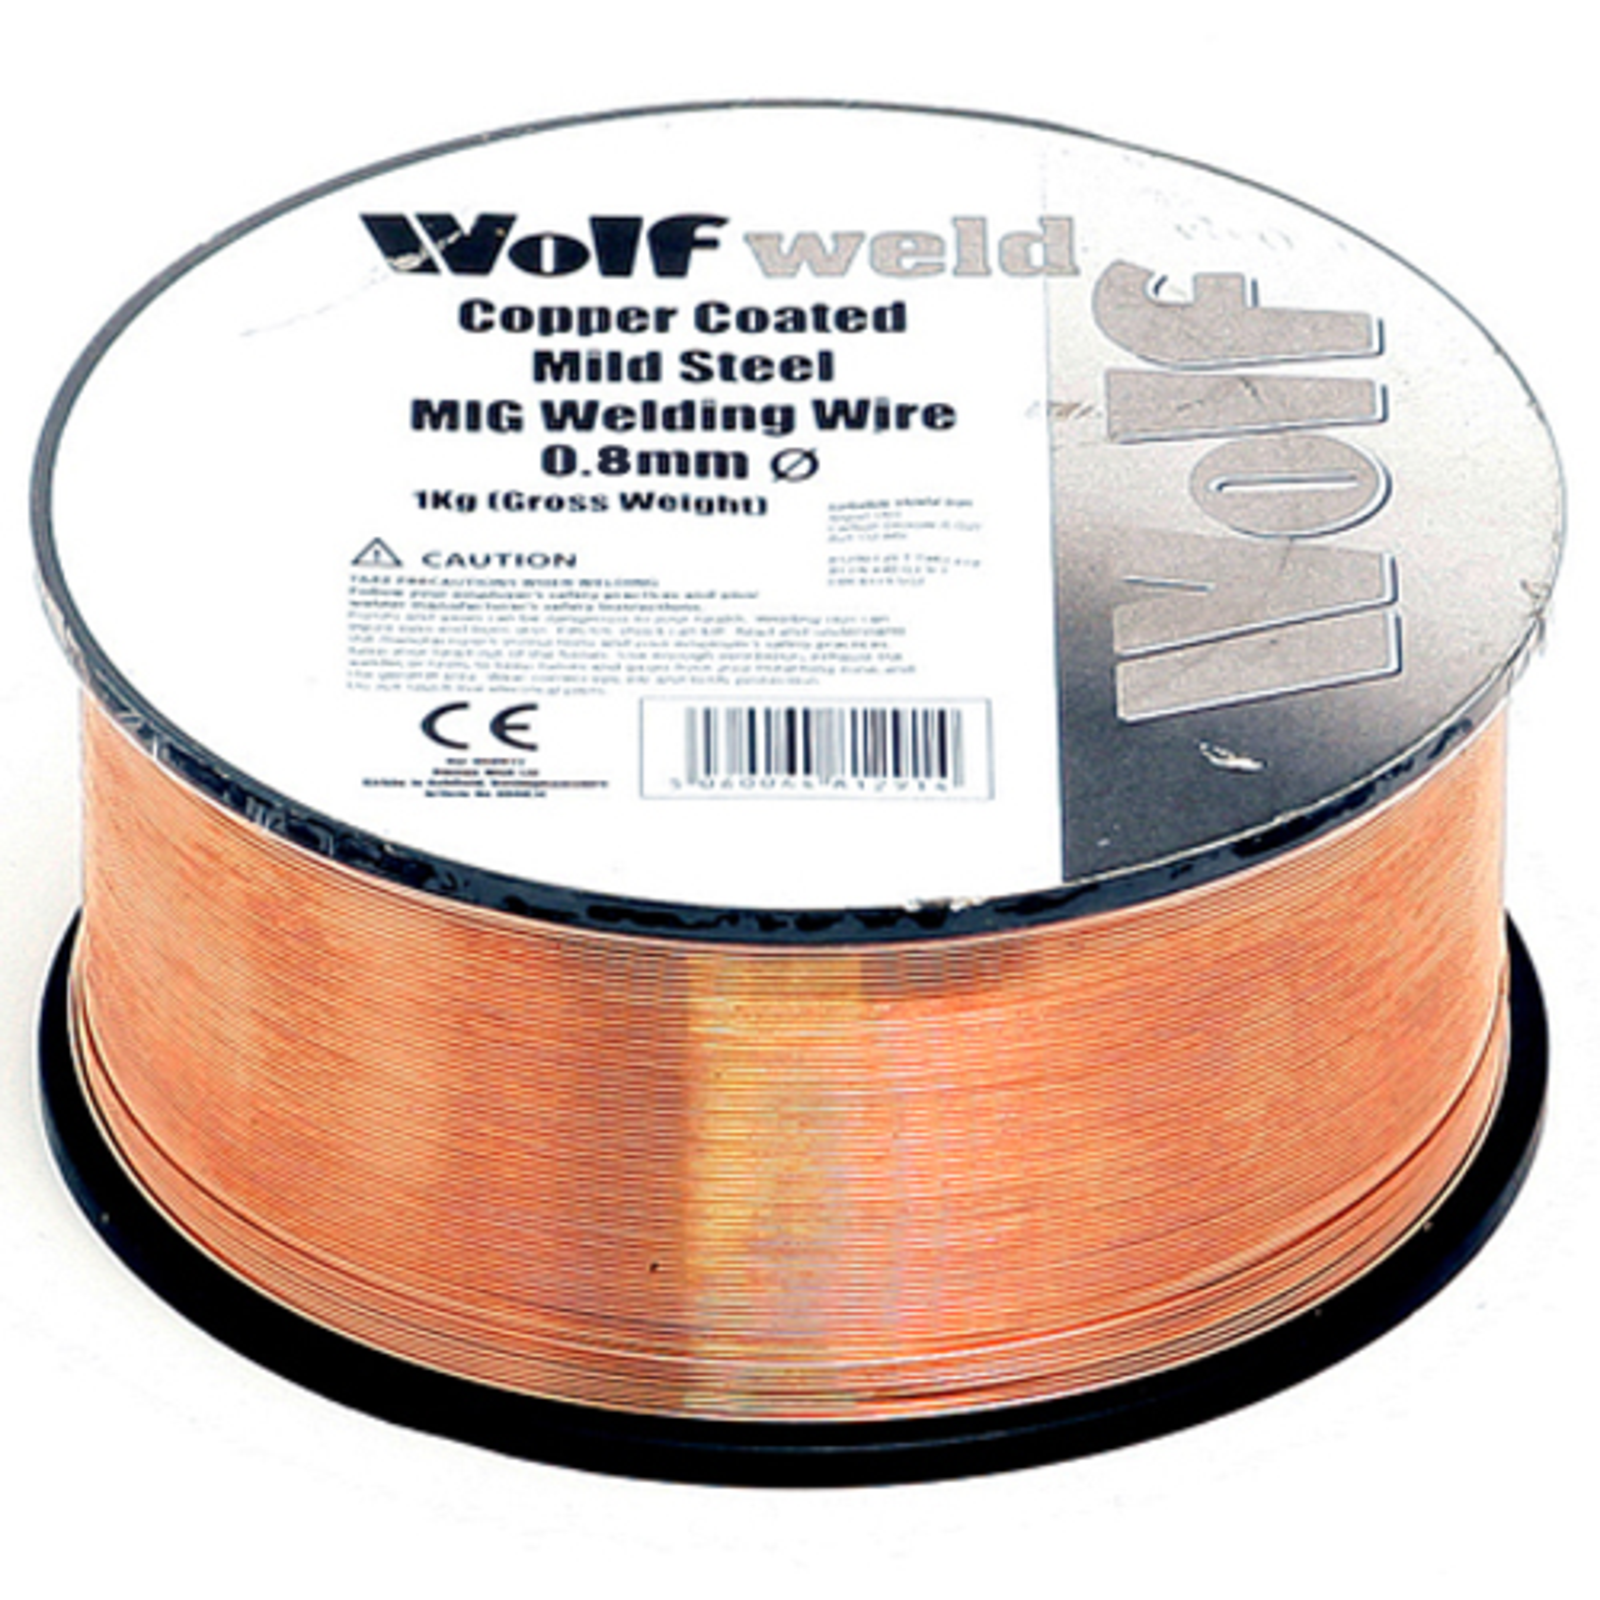 Wolf 0.8mm Welding Wire Copper Coated Spool For MIGs| UKHS.tv Tools ...